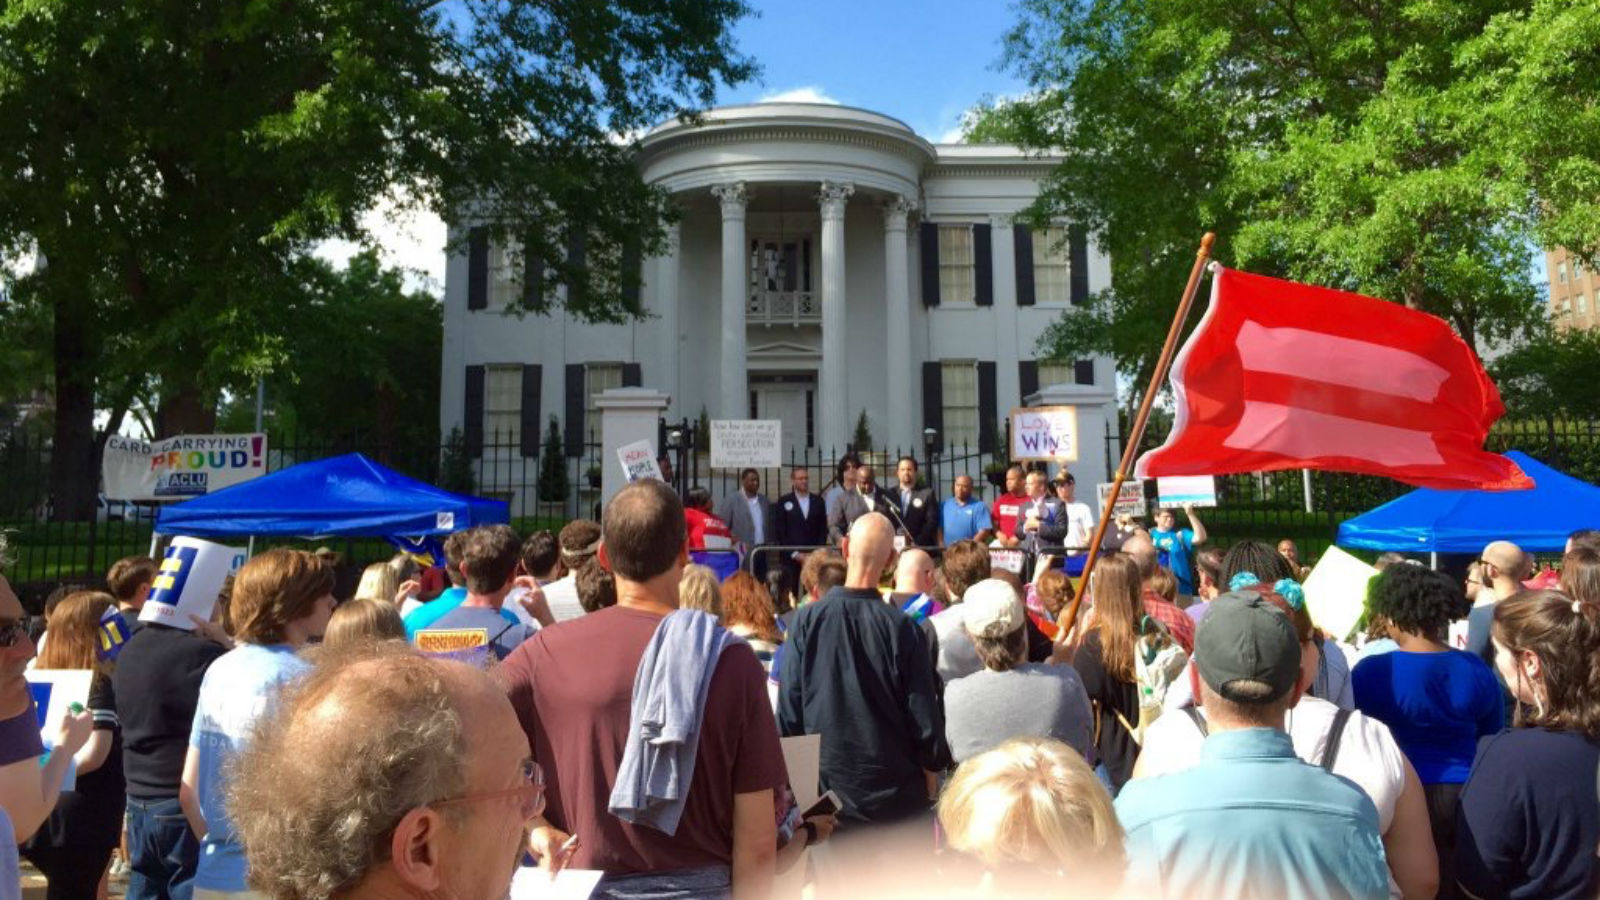 b2fb448592c Hundreds Rally in MS to Demand Repeal of Discriminatory H.B. 1523 ...